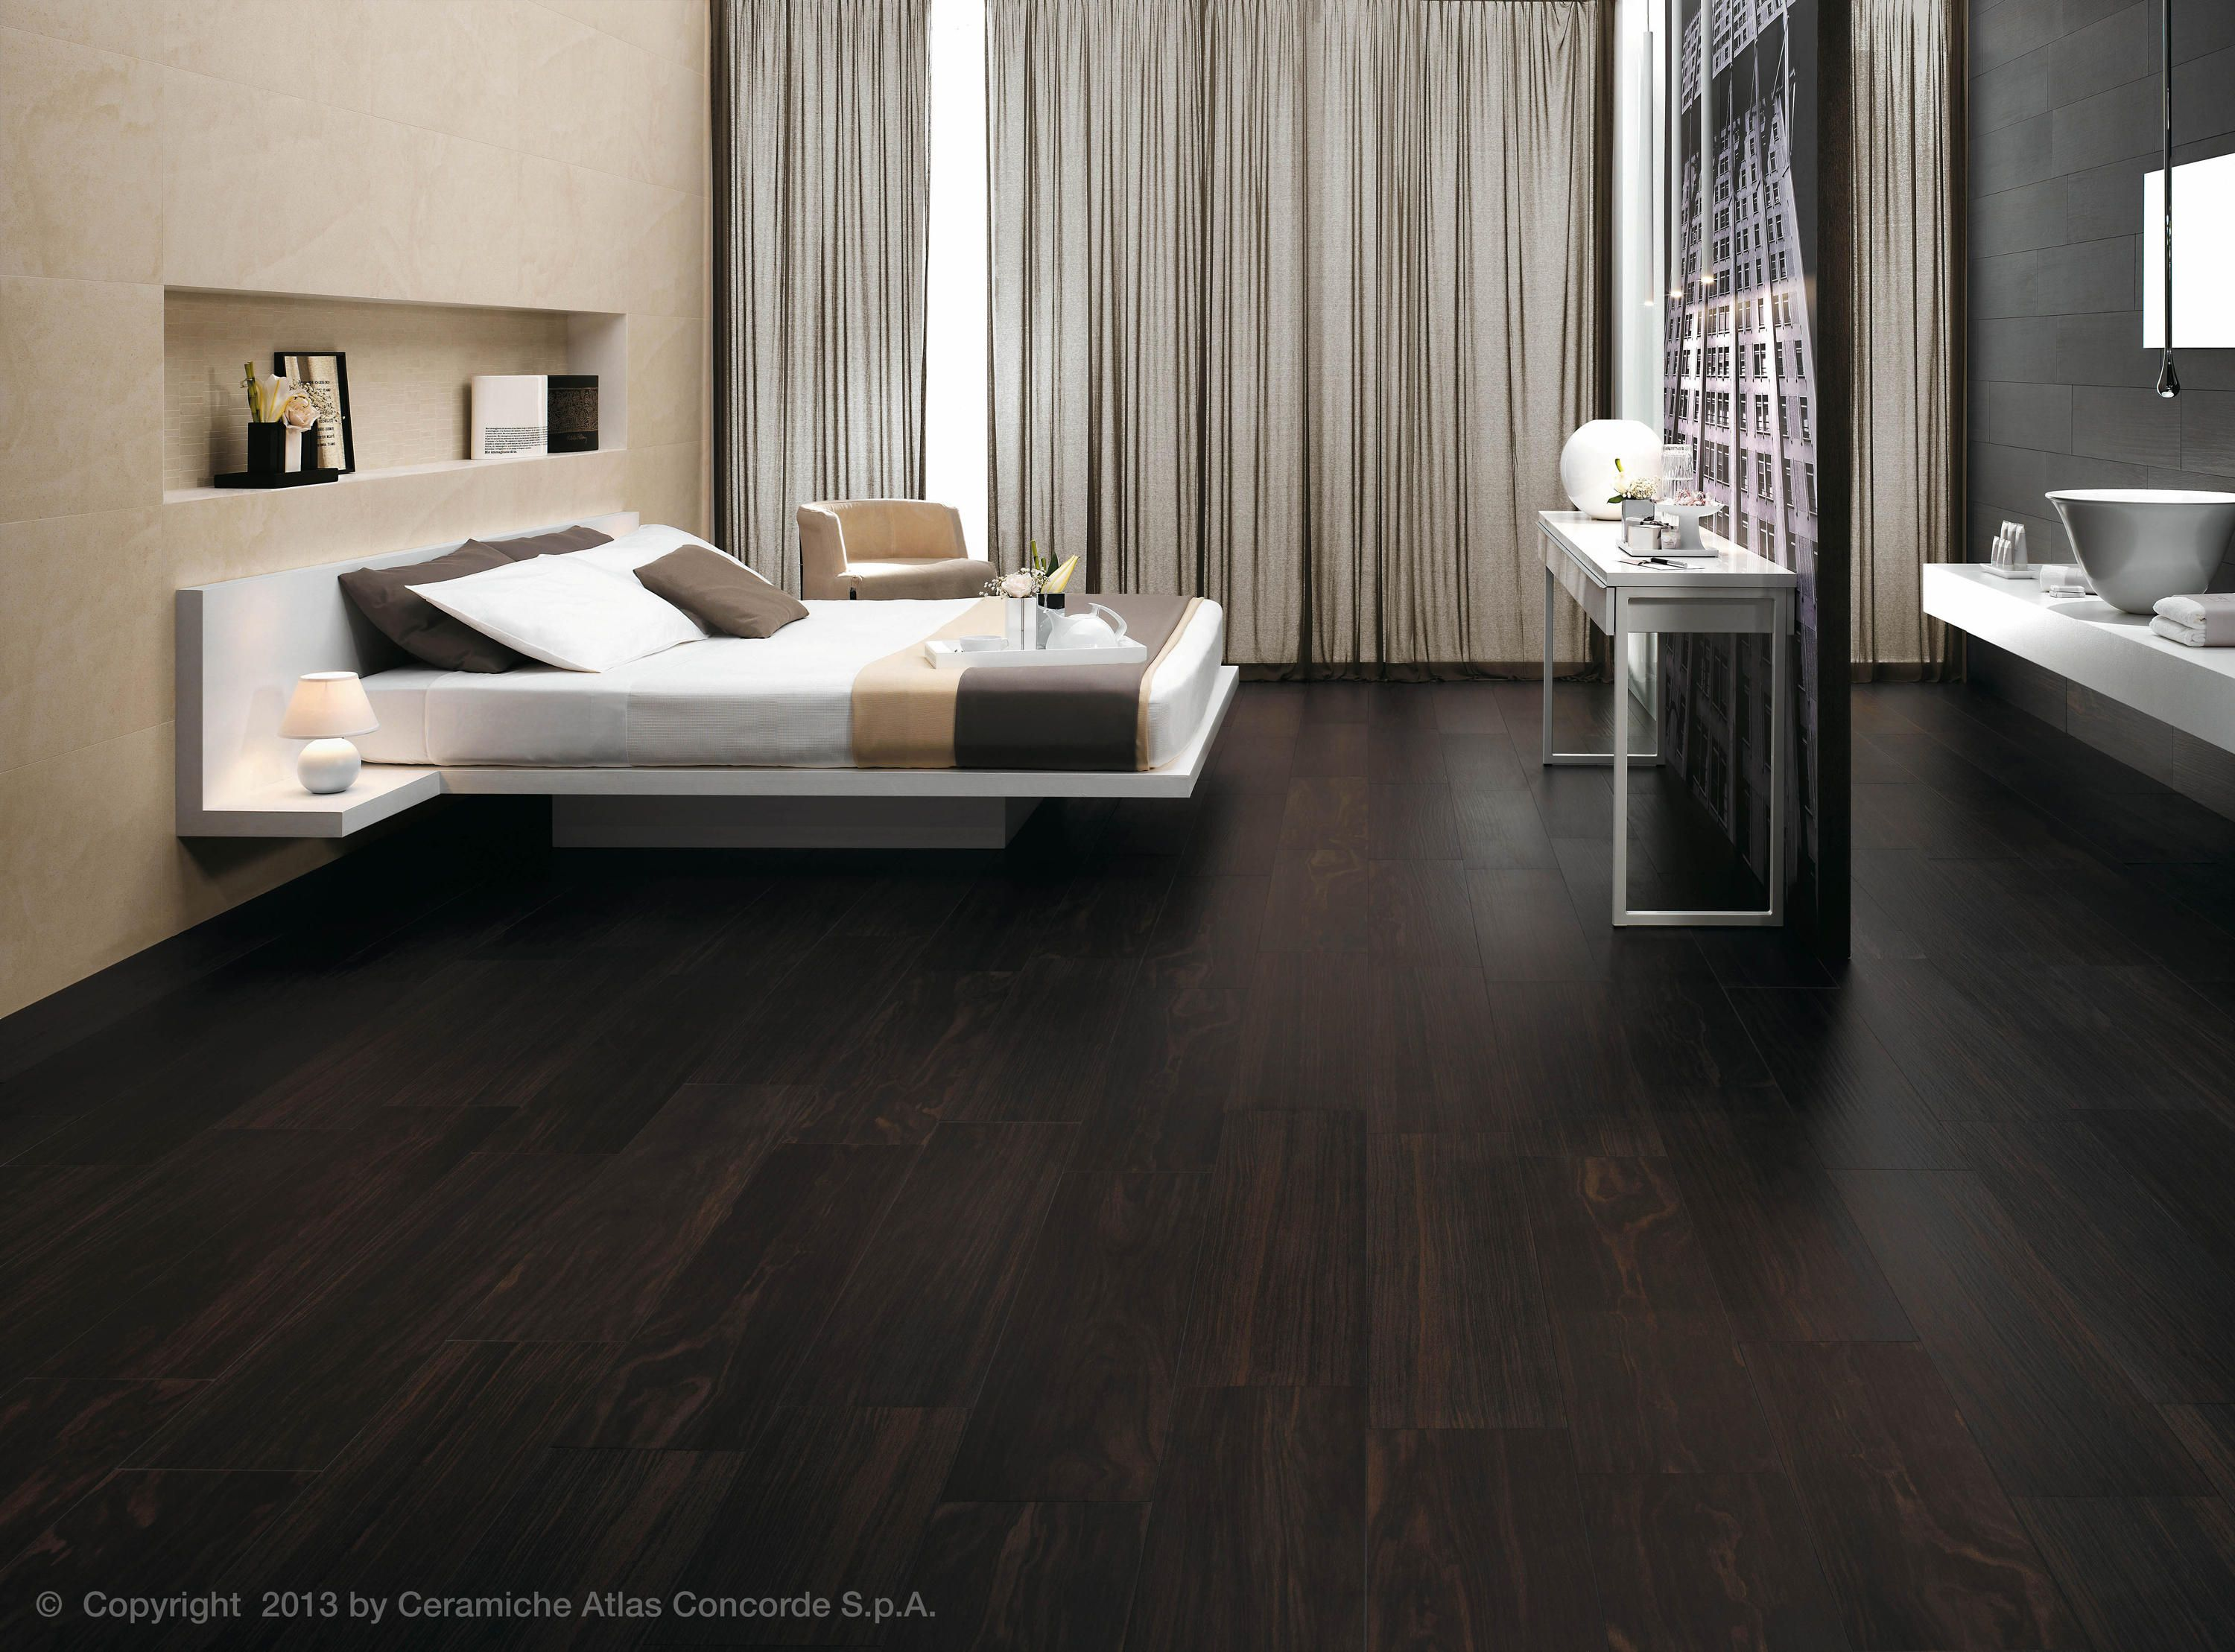 46 Contemporary Tile Floor Bedroom Decortez Tile Bedroom Bedroom Wooden Floor Bedroom Flooring